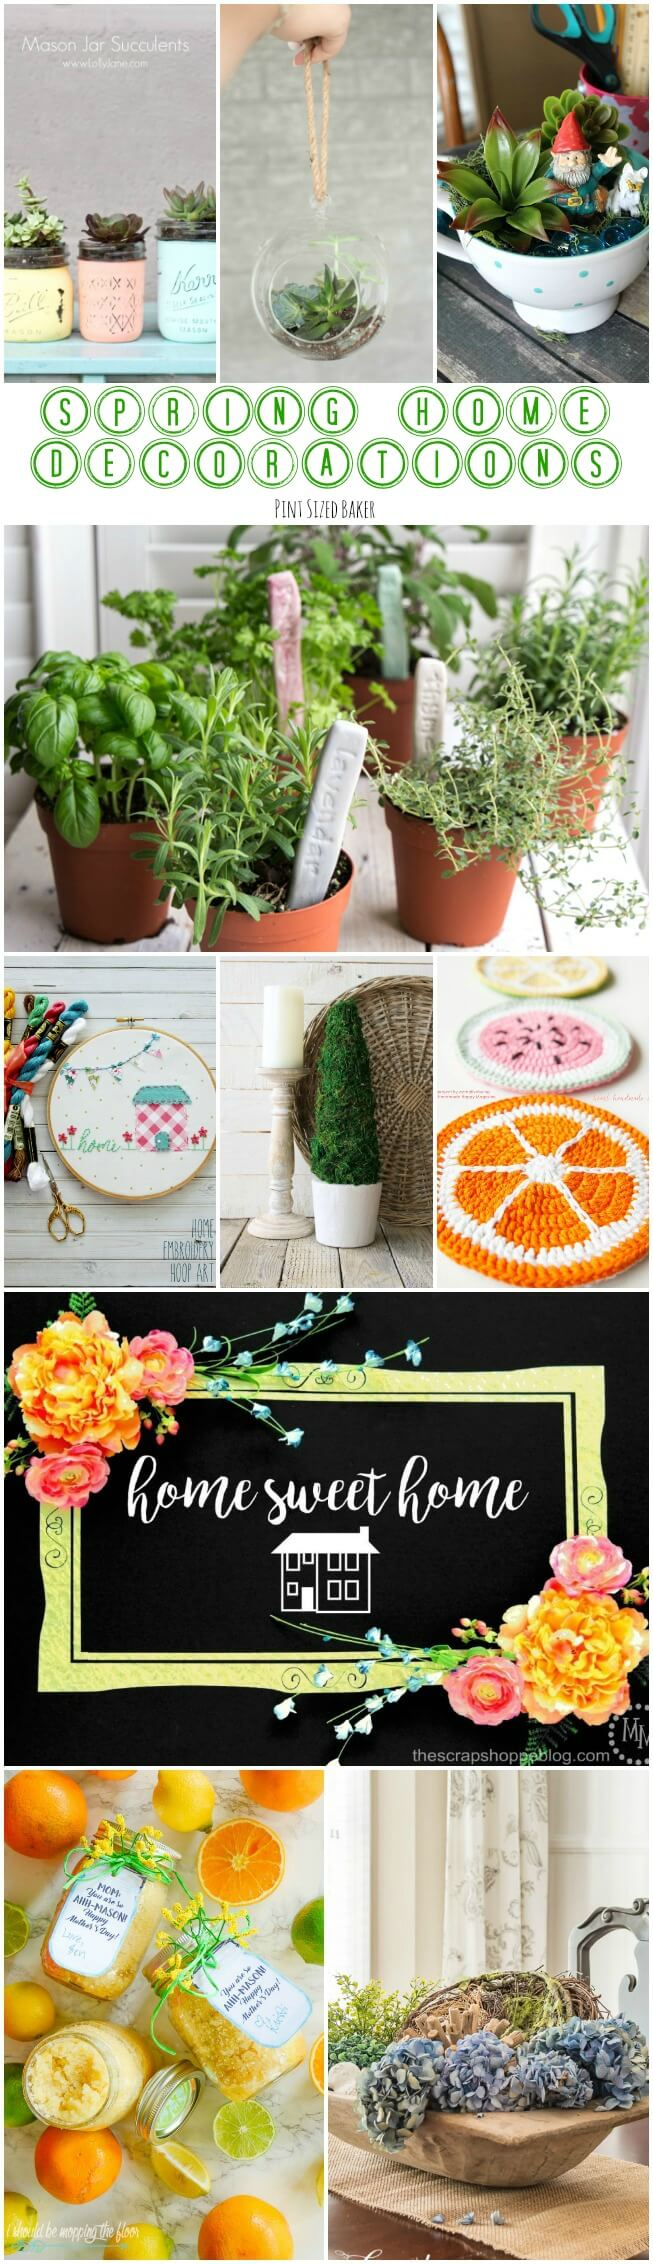 spring home decorations pint sized baker